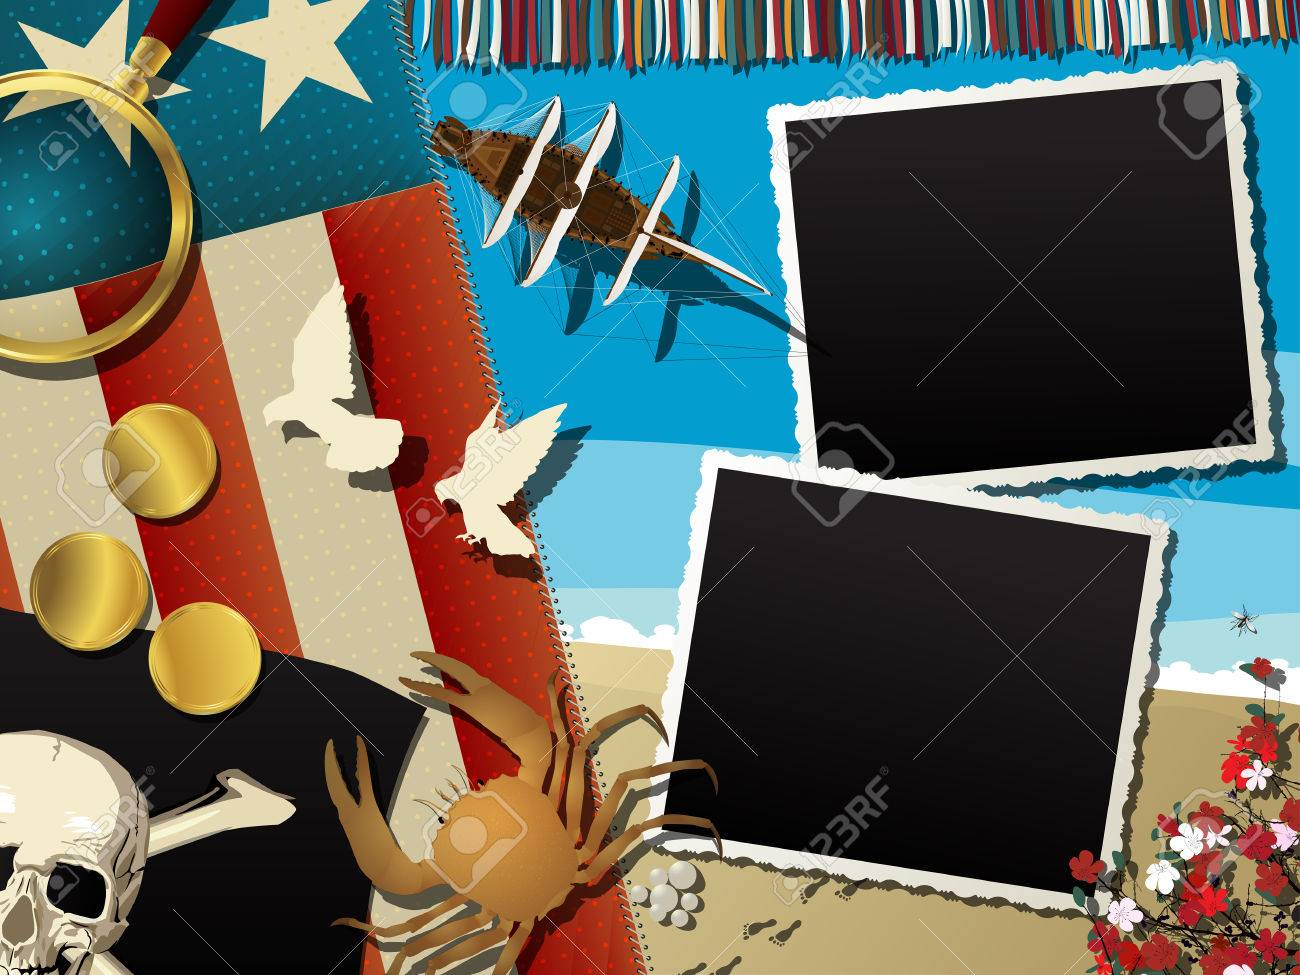 pirate theme abstract collage with empty photo frames royalty free